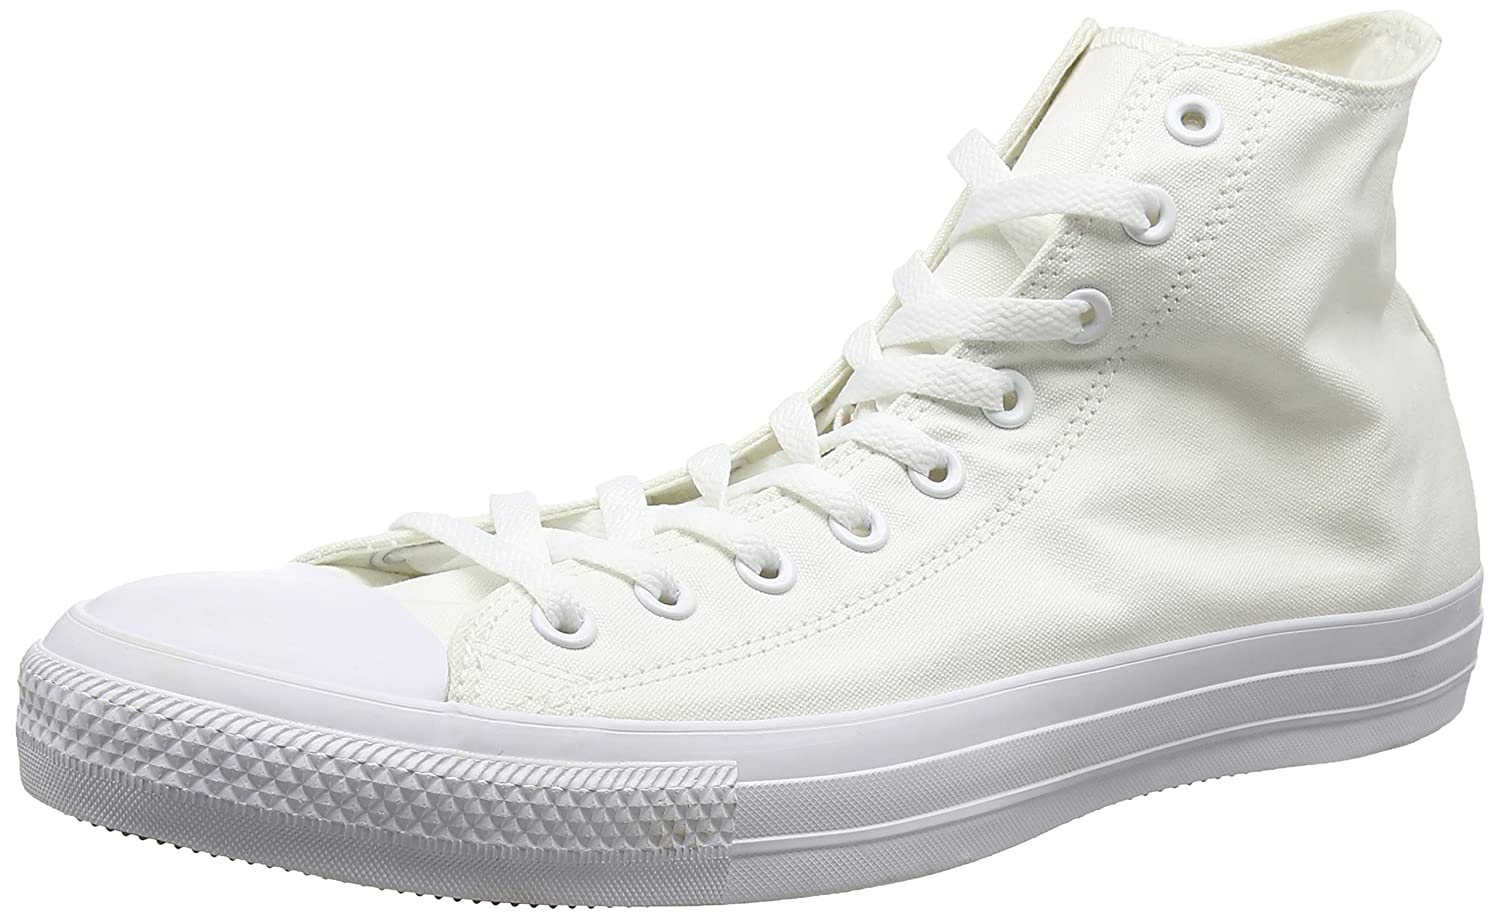 Converse Chuck Taylor All Star 2018 Seasonal High Top Sneaker B000OLTS3U 8 M US|White Monochrome